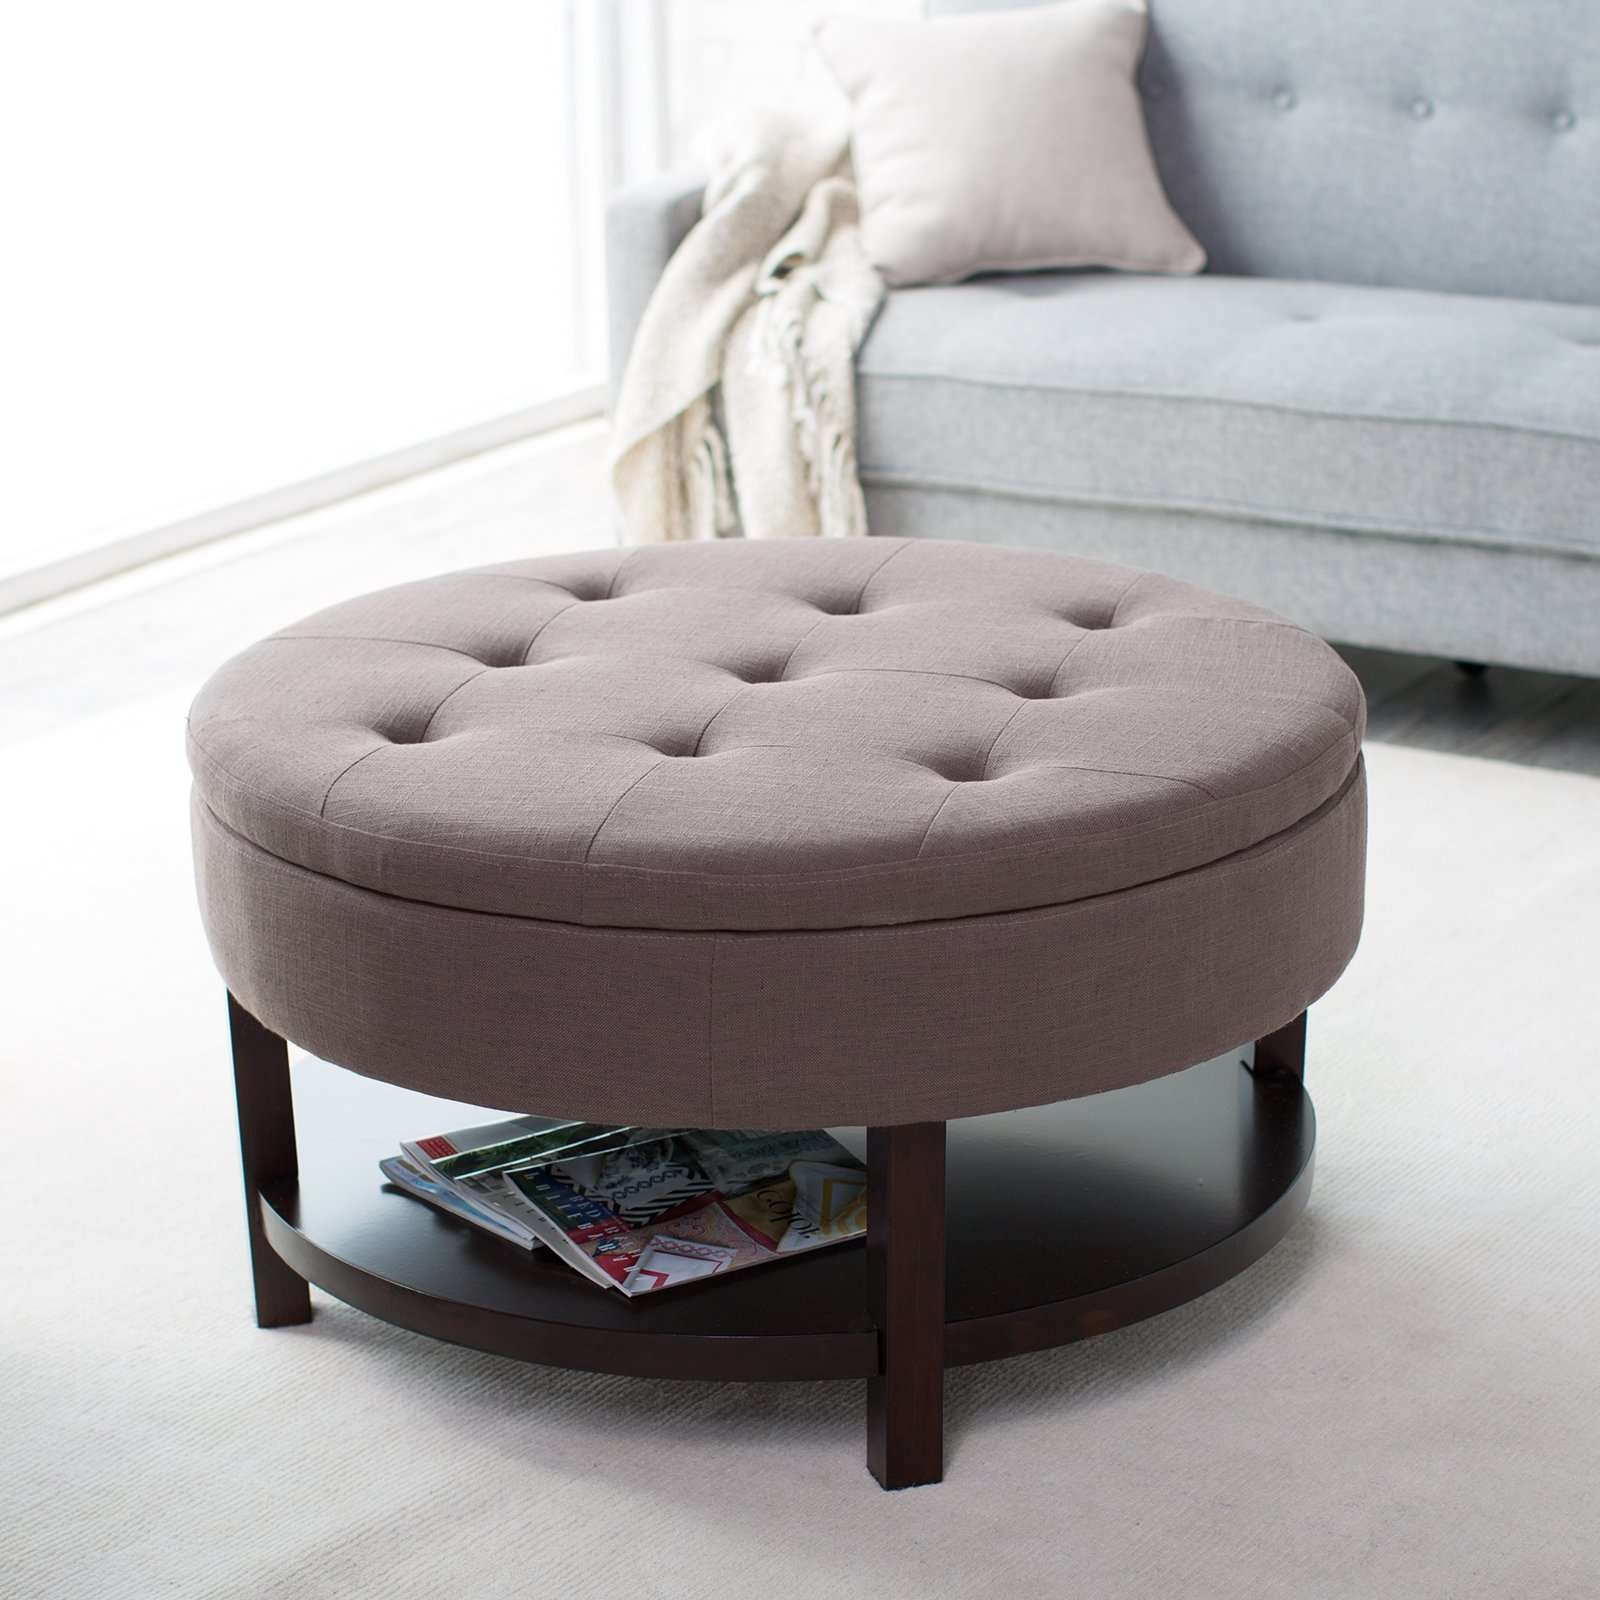 Popular Purple Ottoman Coffee Tables With Regard To Living Room : Living Room Furniture Coffee Table Glass And Small (View 16 of 20)